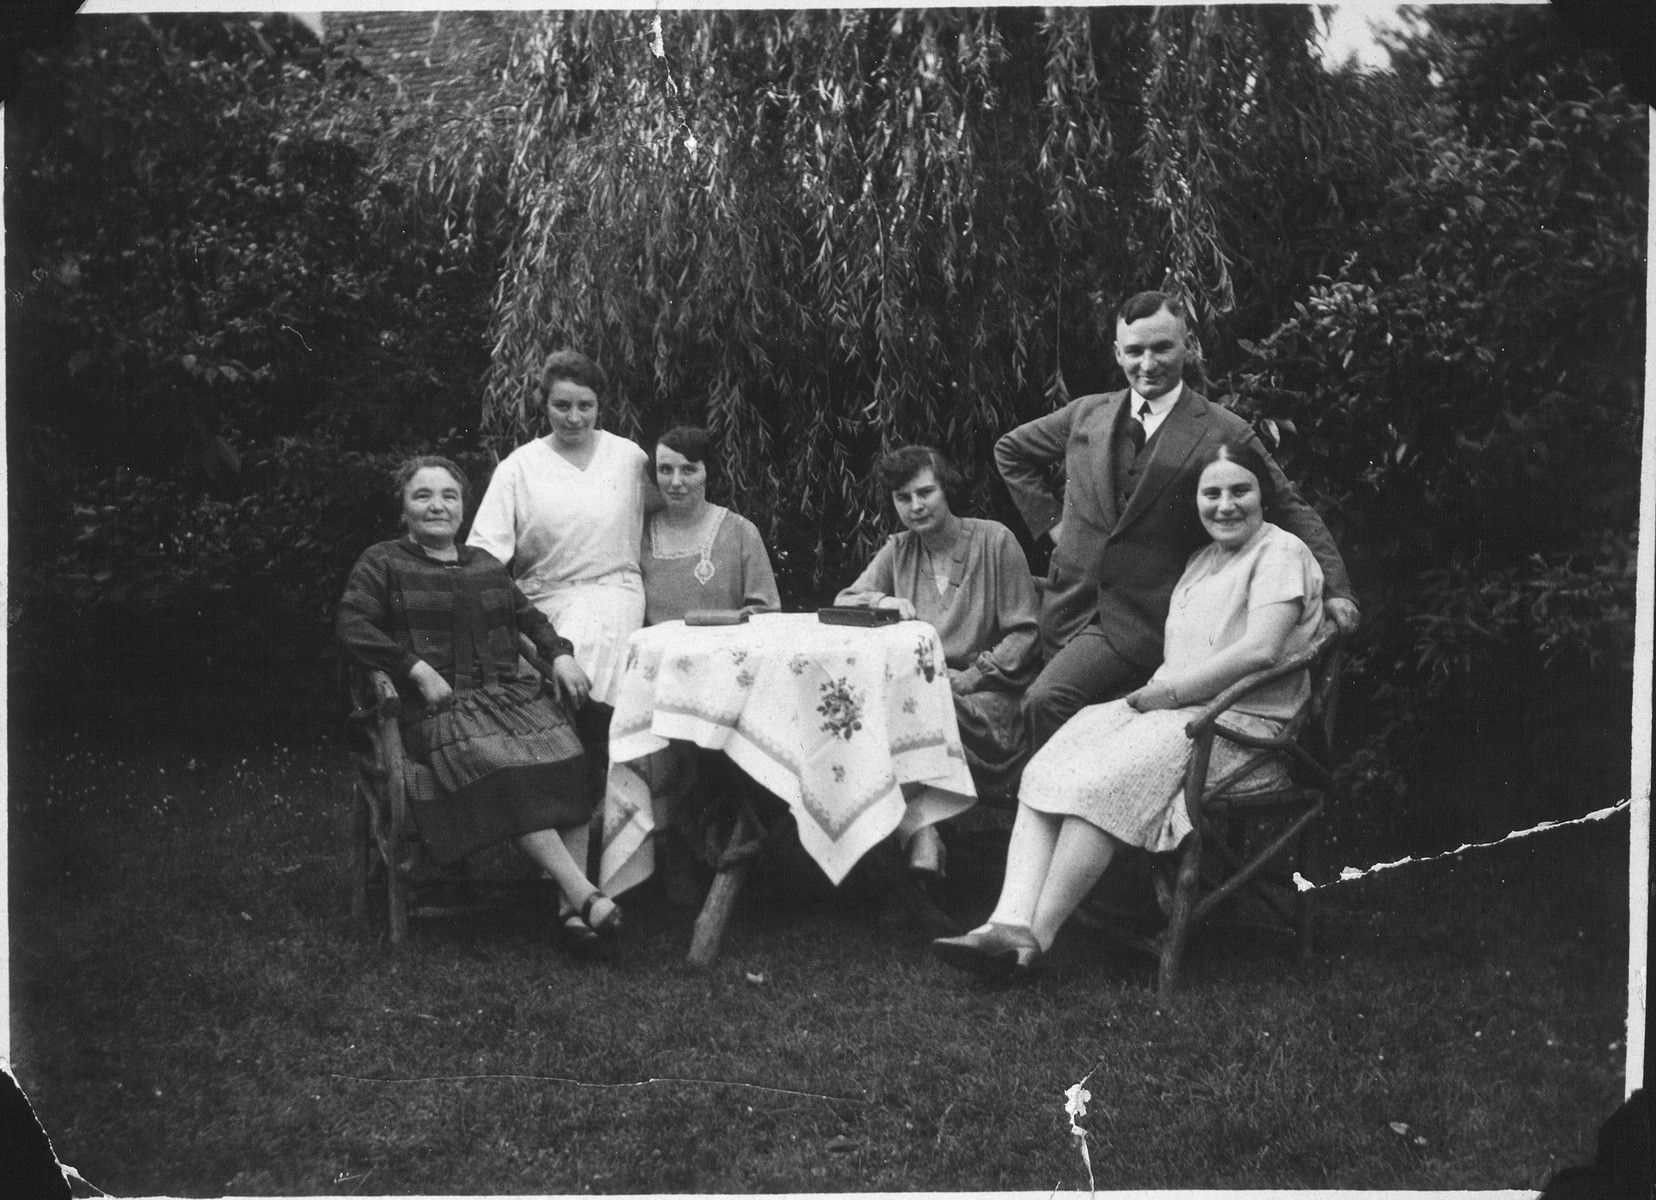 Members of the Meyer family pose outside in the yard seated around a table in Moenchengladbach, Germany.  Pictured in the back is Sol Meyer.